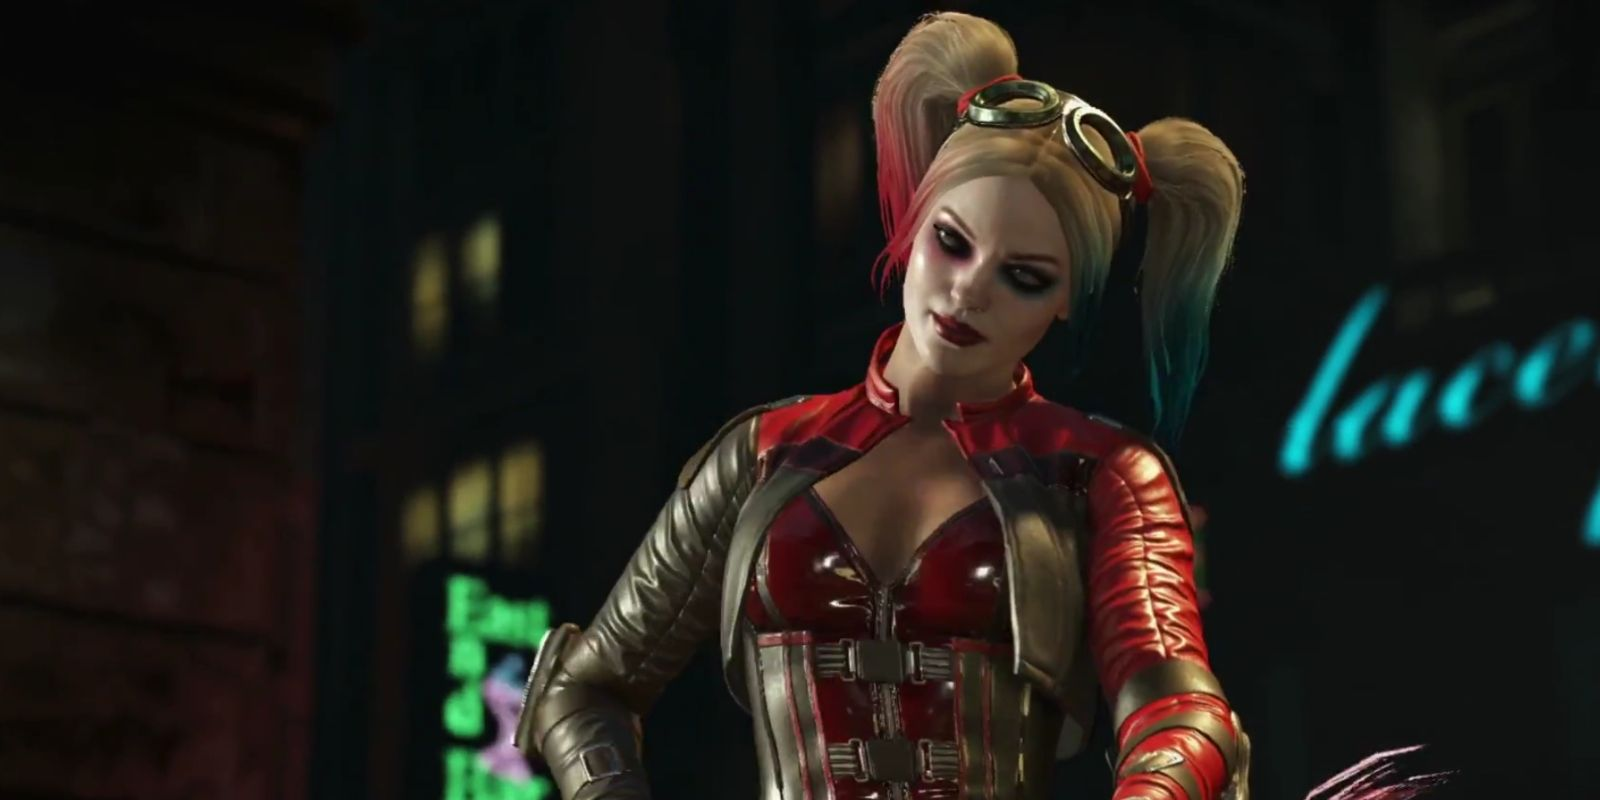 INJUSTICE 2 - All Harley Quinn Scenes - Story Mode - YouTube